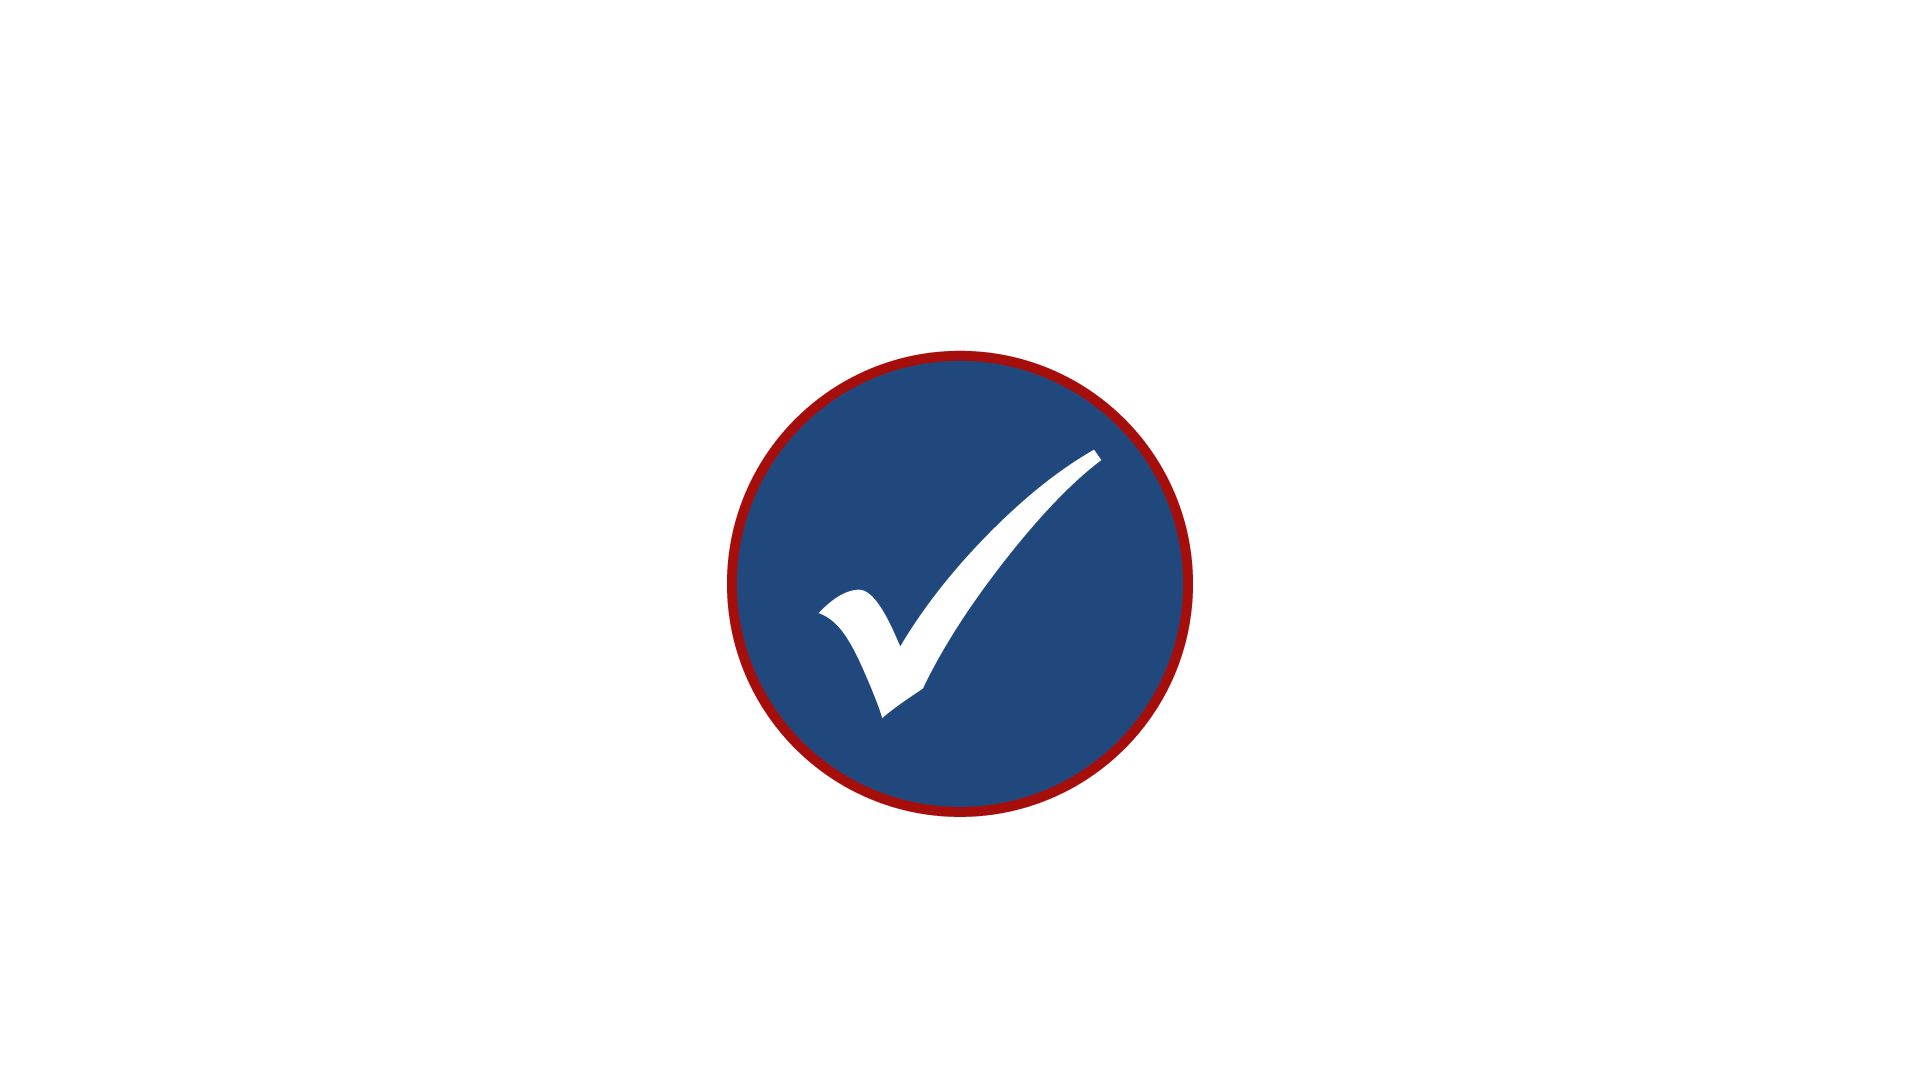 candidate passed the intrerview